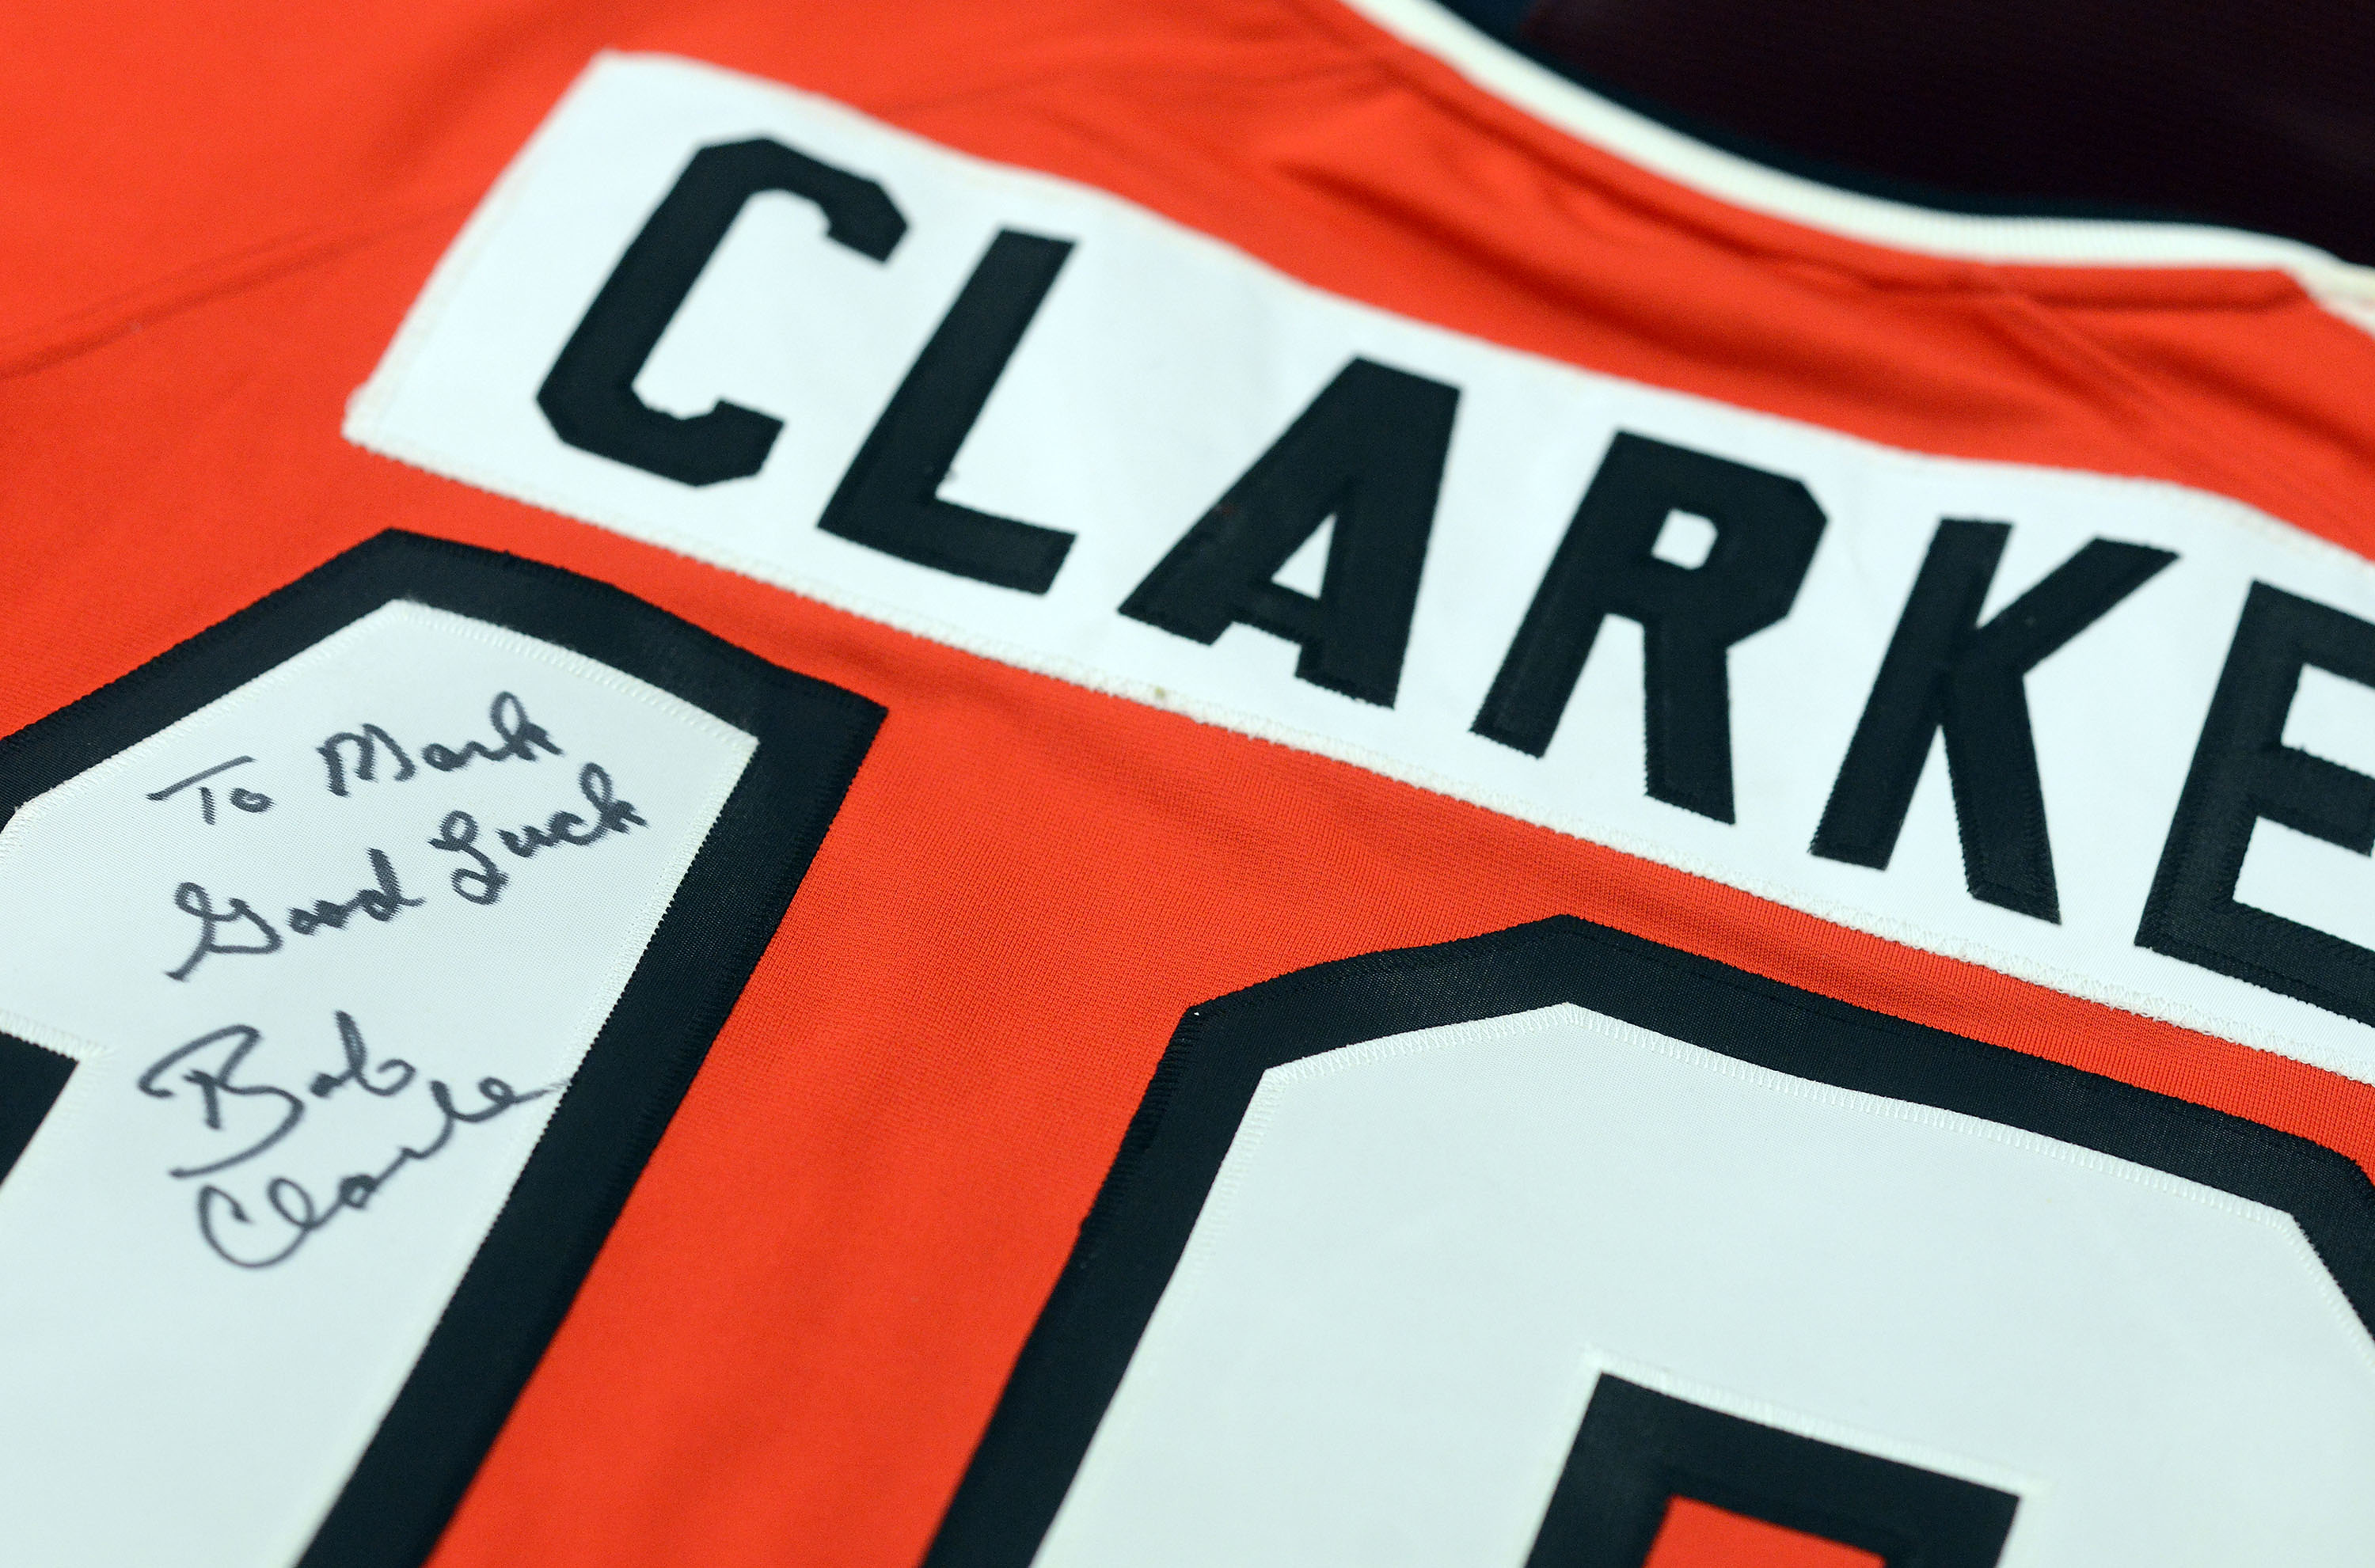 A signed Bobby Clarke Philadelphia Flyers jersey is up for bidding during the online auction of some sports memorabilia, most of which came from Mark Begley, a Cherry Hill man arrested for mortgage fraud two years ago.